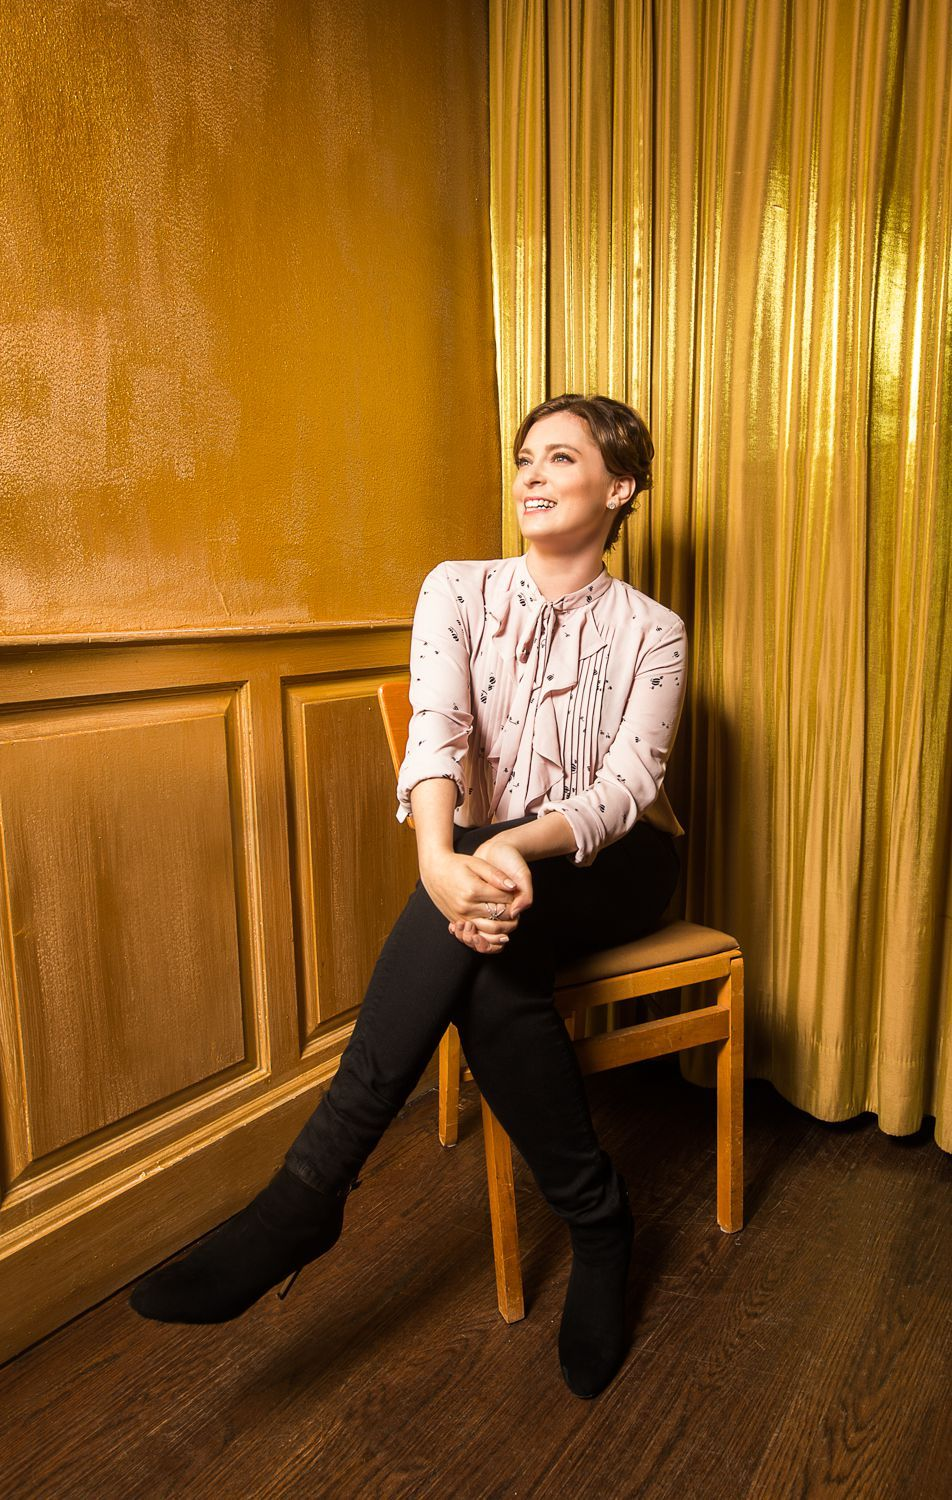 Rachel Bloom on Why Her CW Show Is a 'Little More Nuanced' Than Its Title